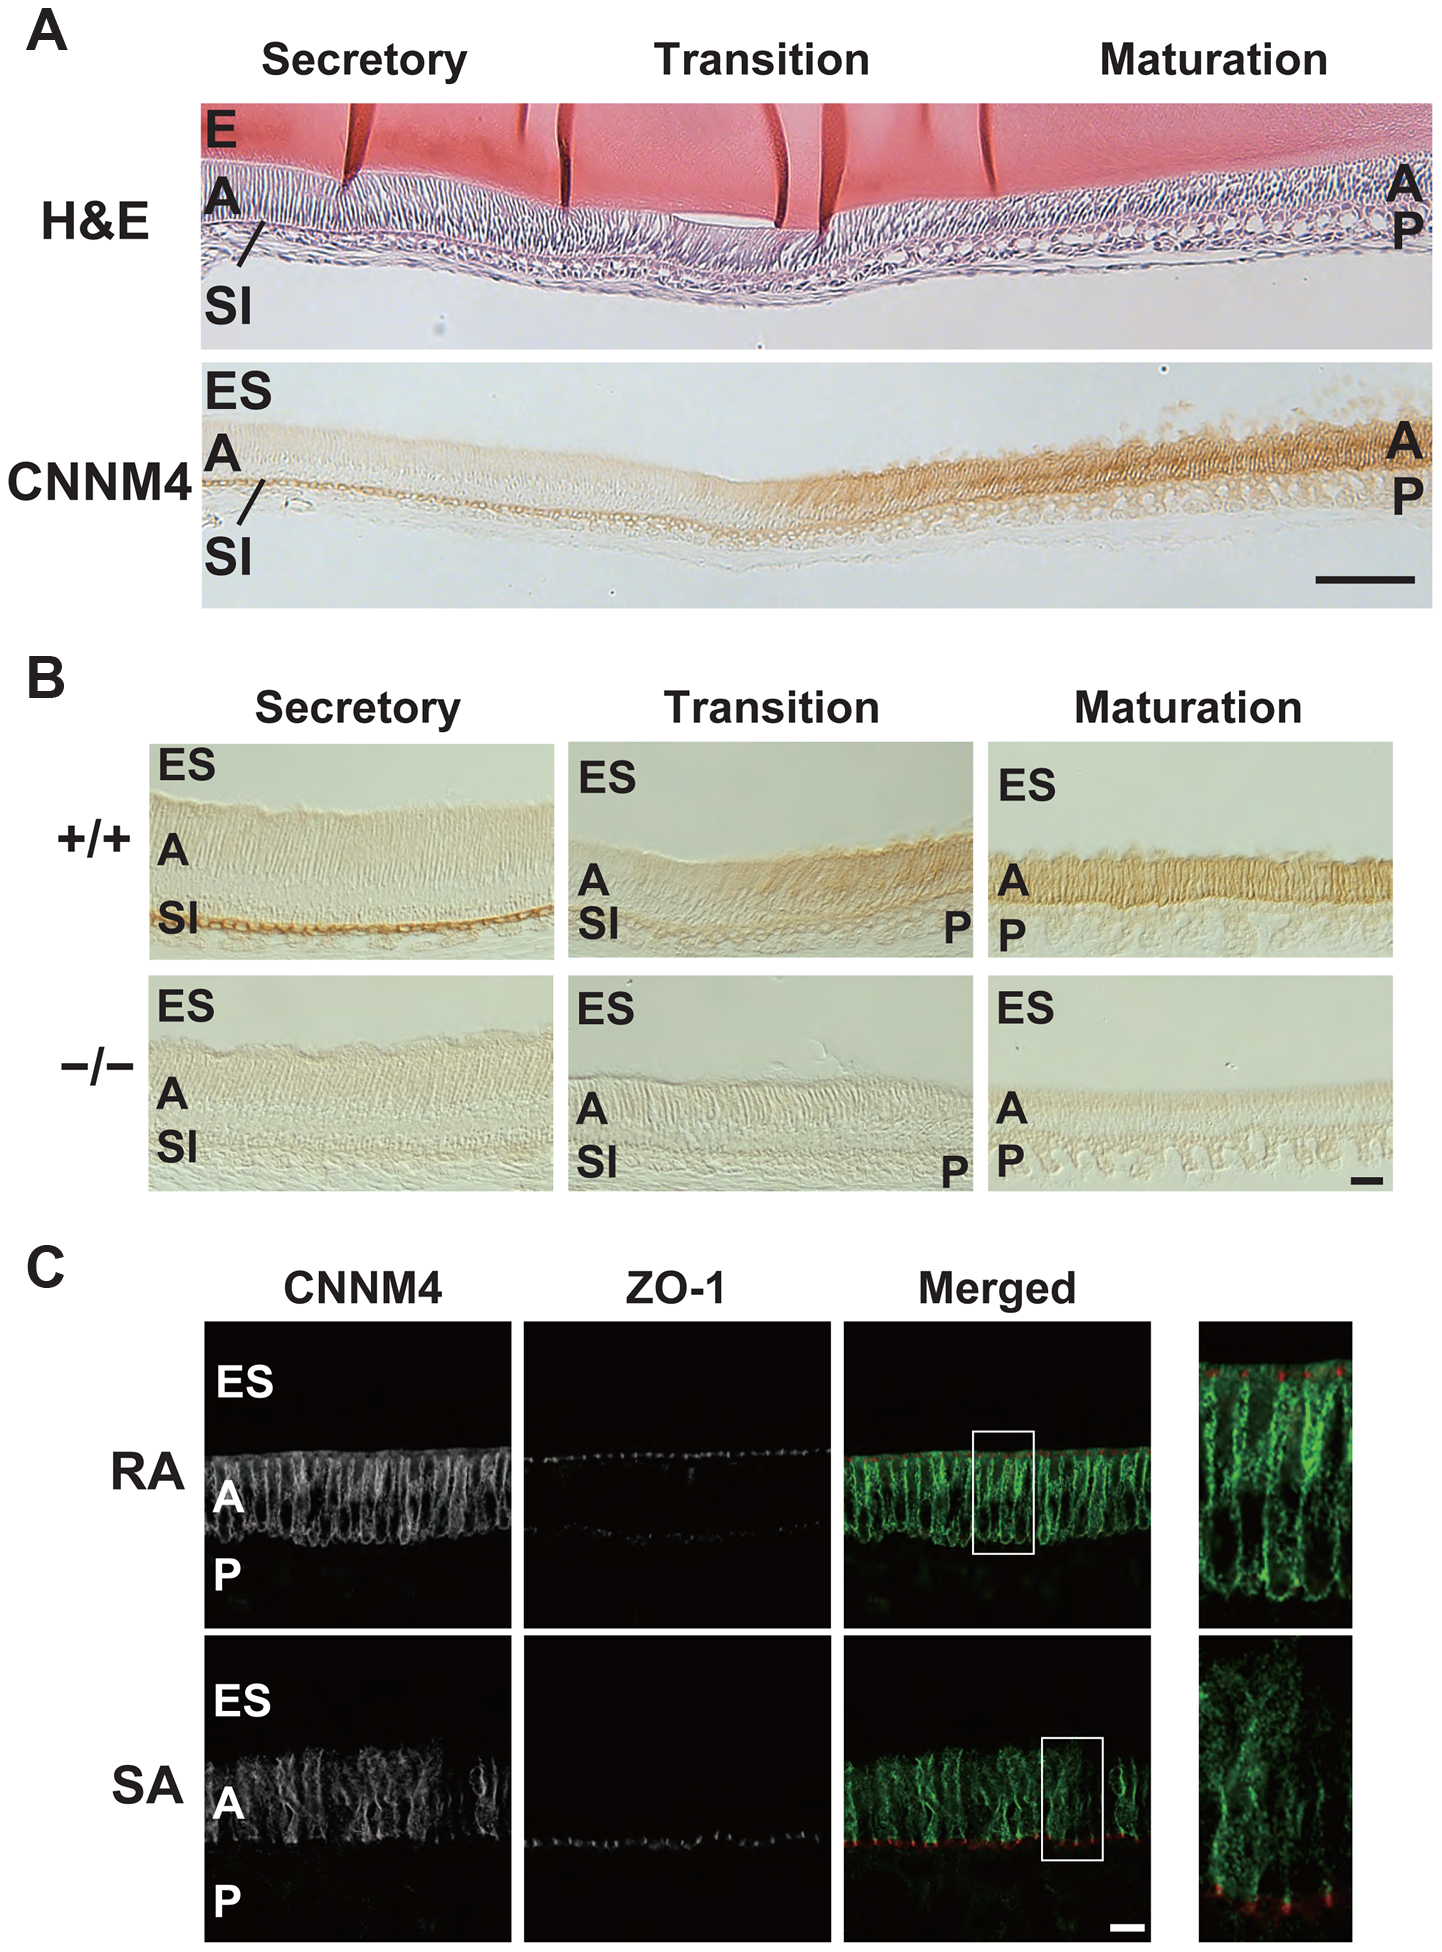 Basolateral localization of CNNM4 in the ameloblasts.